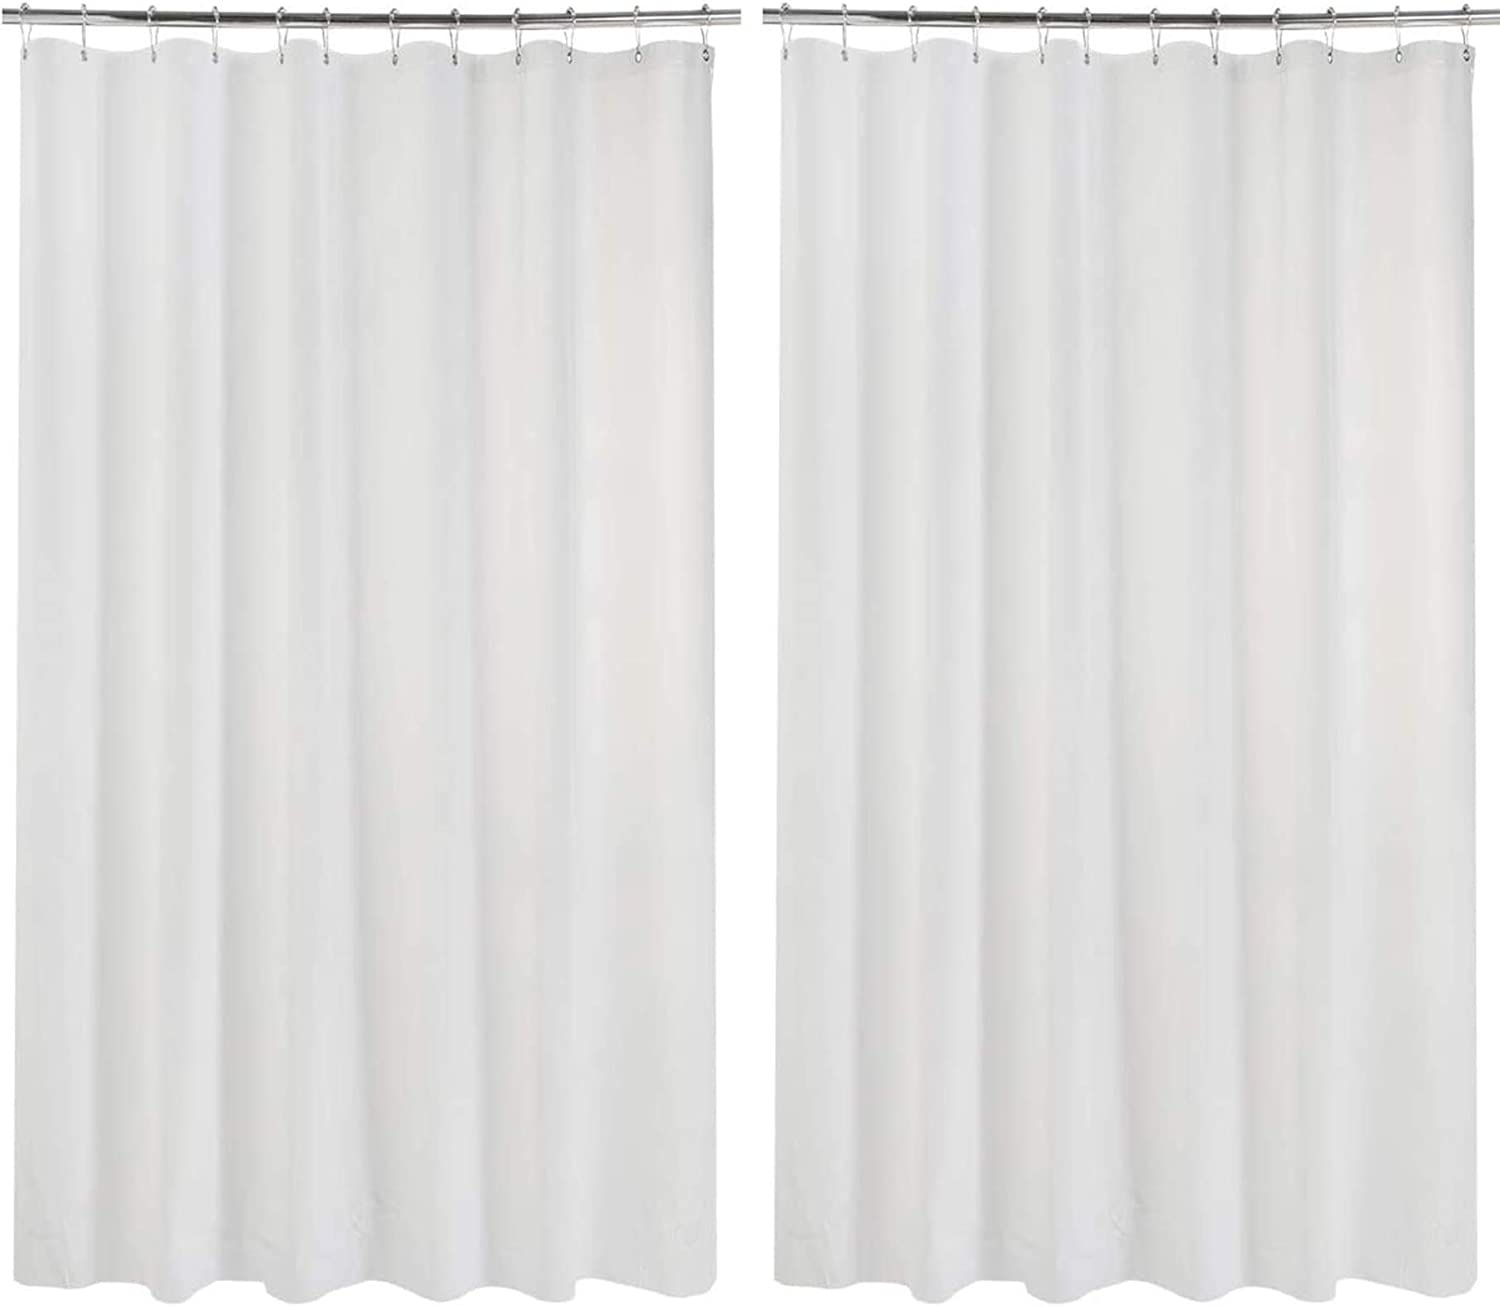 AmazerBath 2 Pack Thin Shower Curtain Liners, 72 x 84 Inches PEVA 3G Shower Curtains with Stones and 12 Grommet Holes, Waterproof Lightweight Plastic Liners- White